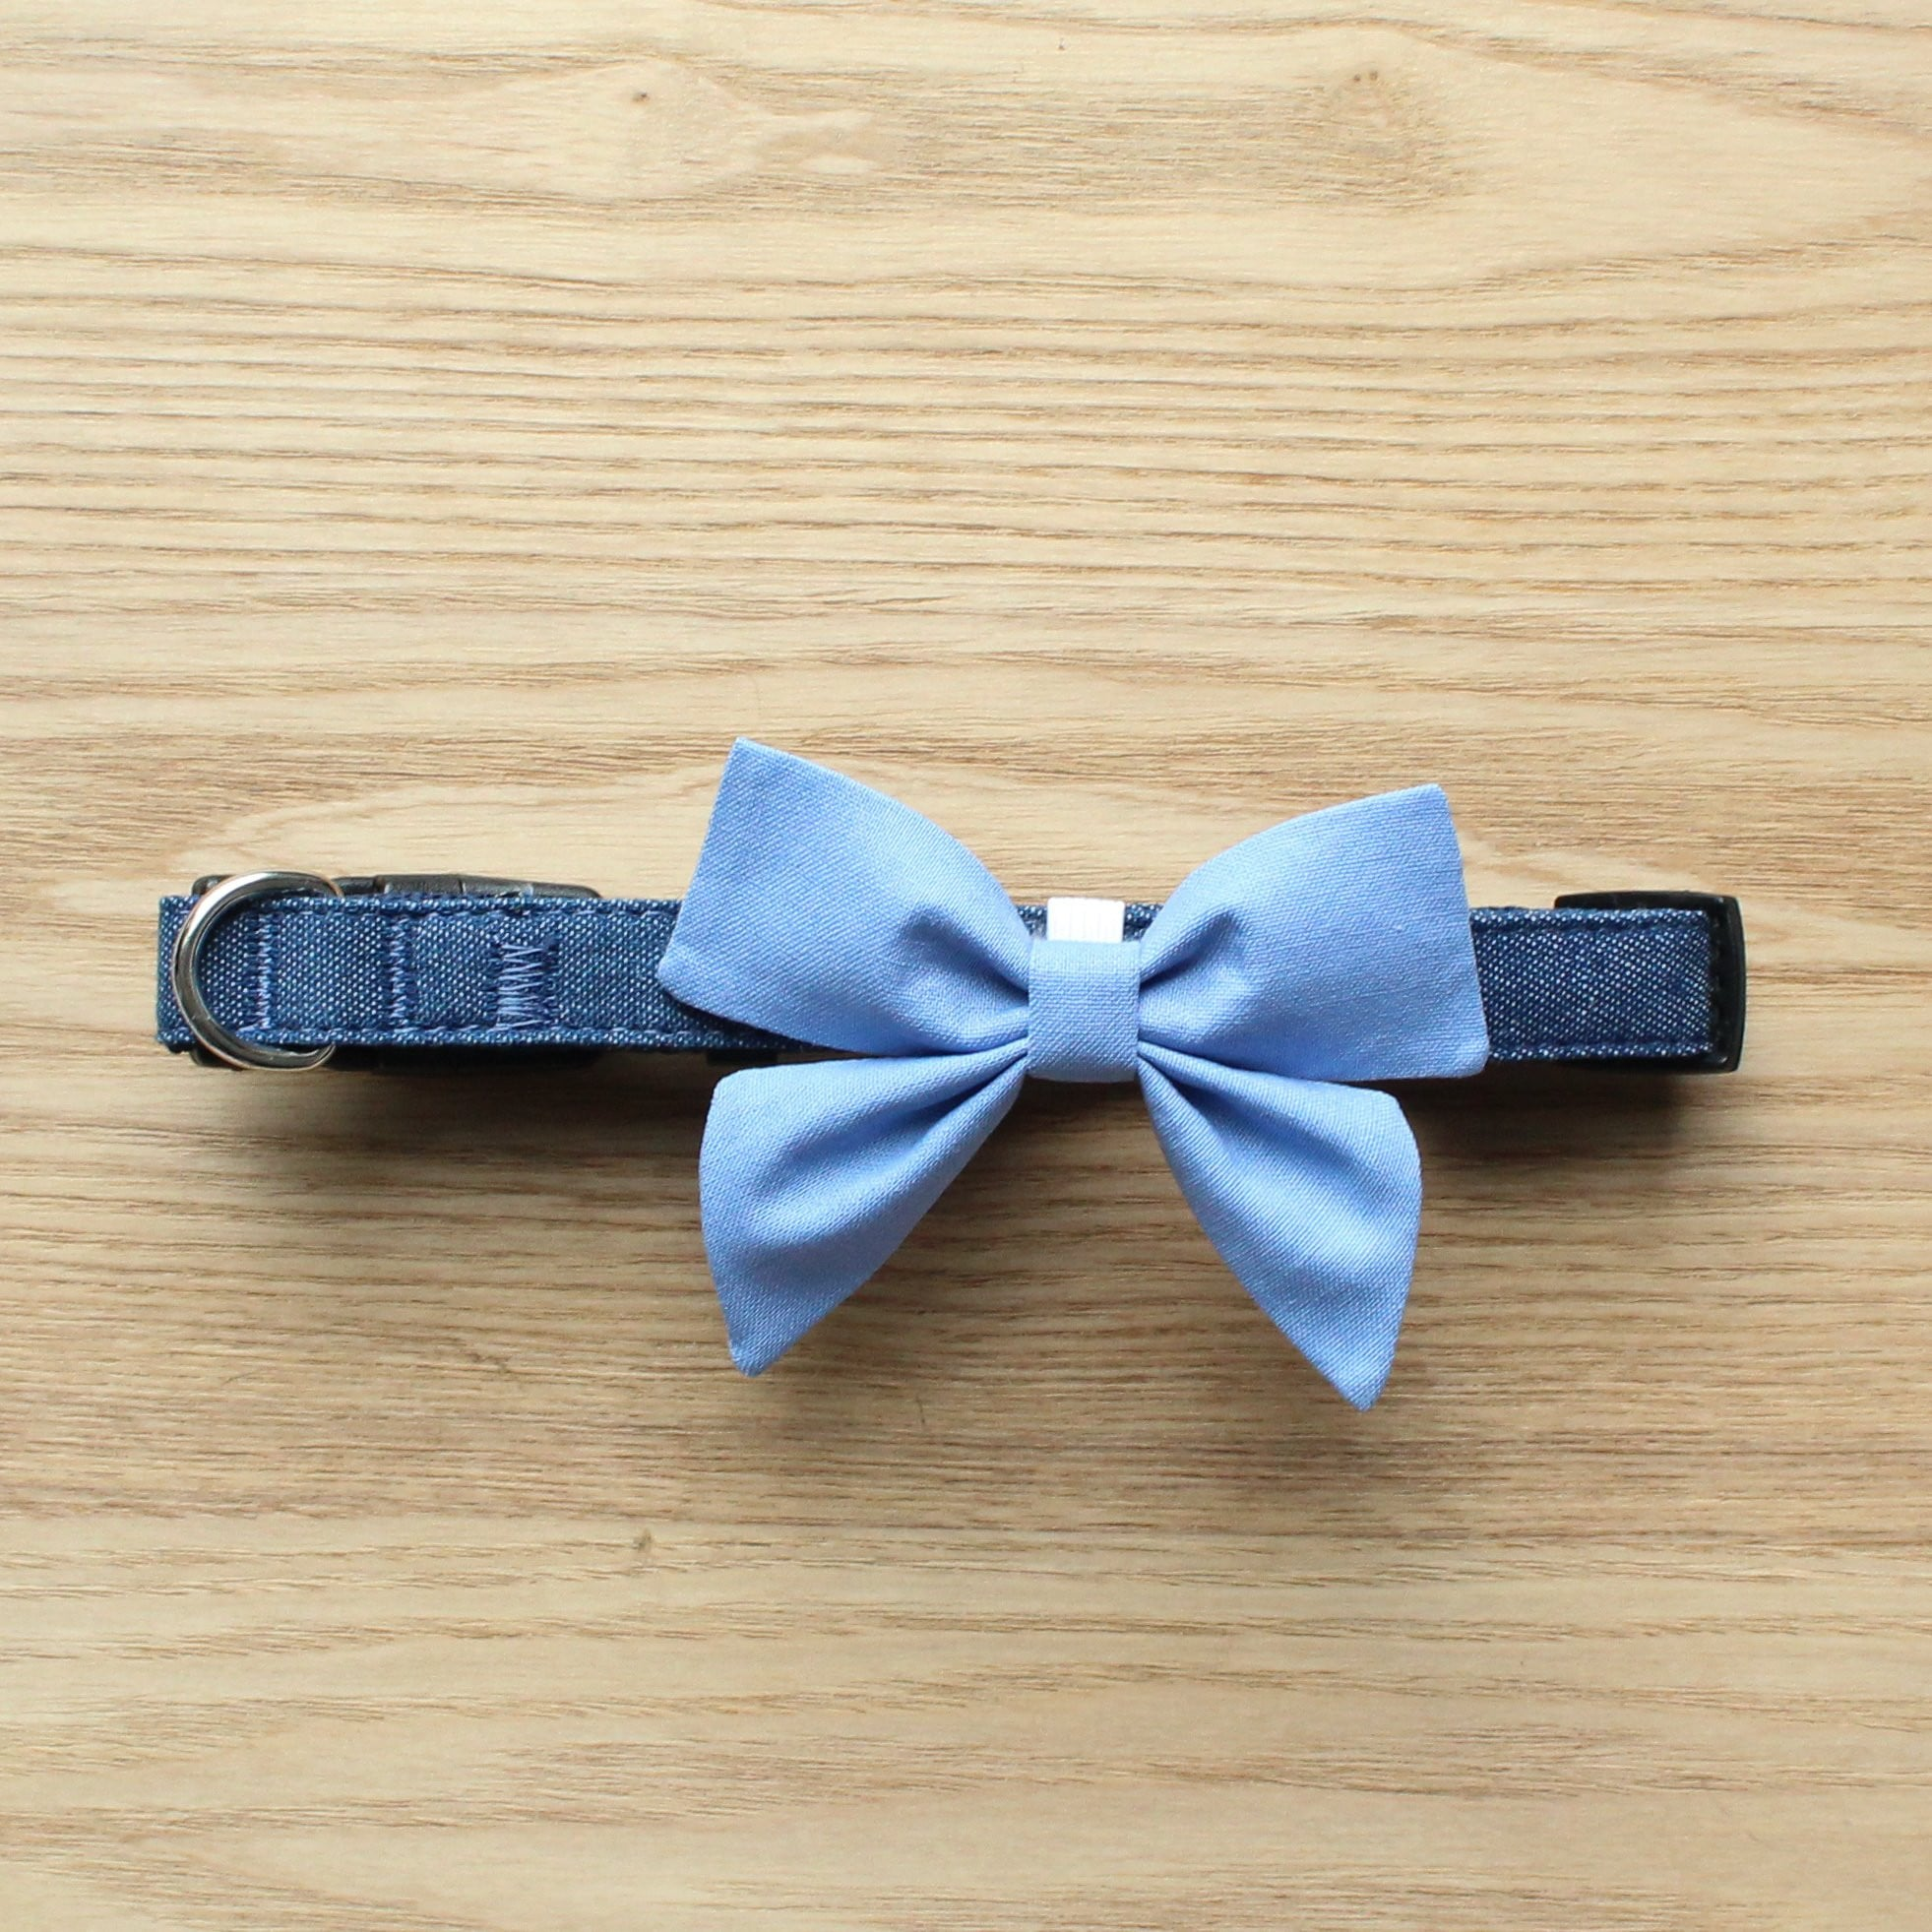 Monogram Dog Bow Tie - Light Blue by That Dog Shop - We have Afterpay!